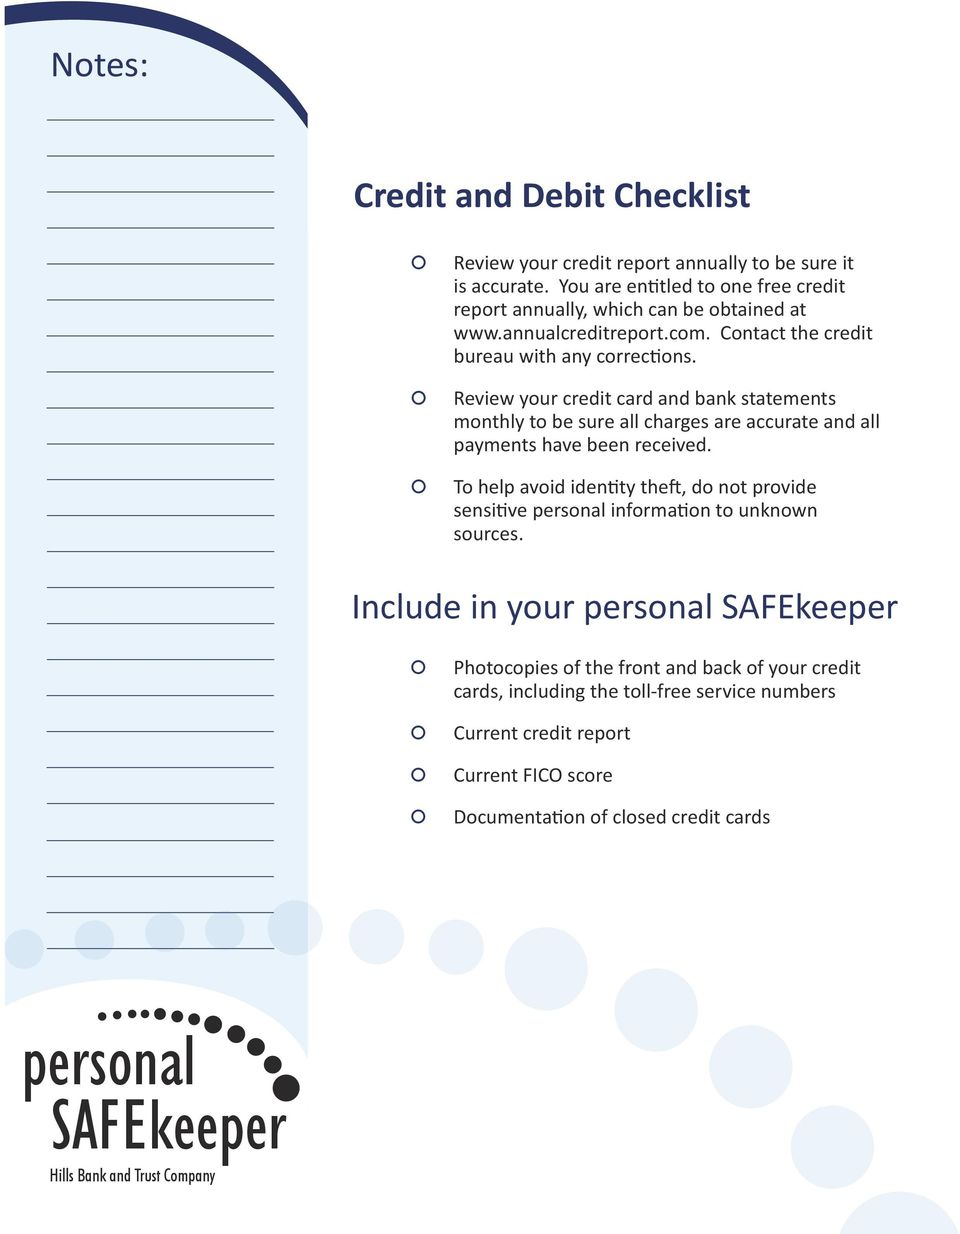 Review your credit card and bank statements monthly to be sure all charges are accurate and all payments have been received.